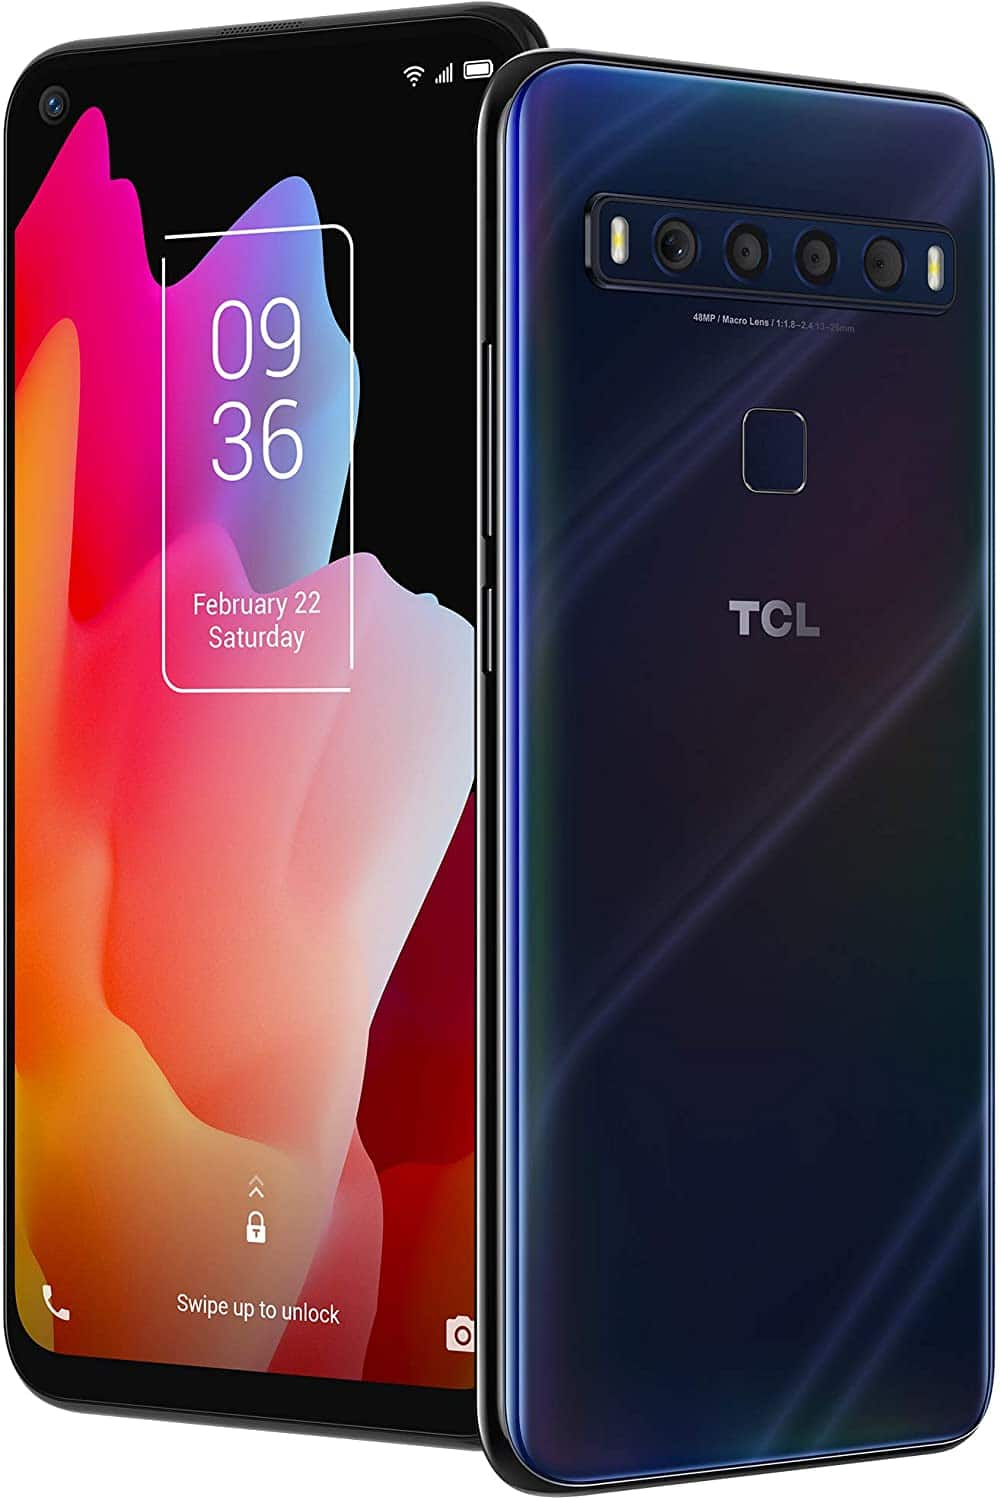 """TCL 10L, Unlocked Android Smartphone with 6.53"""" FHD + LCD Display $174.99 